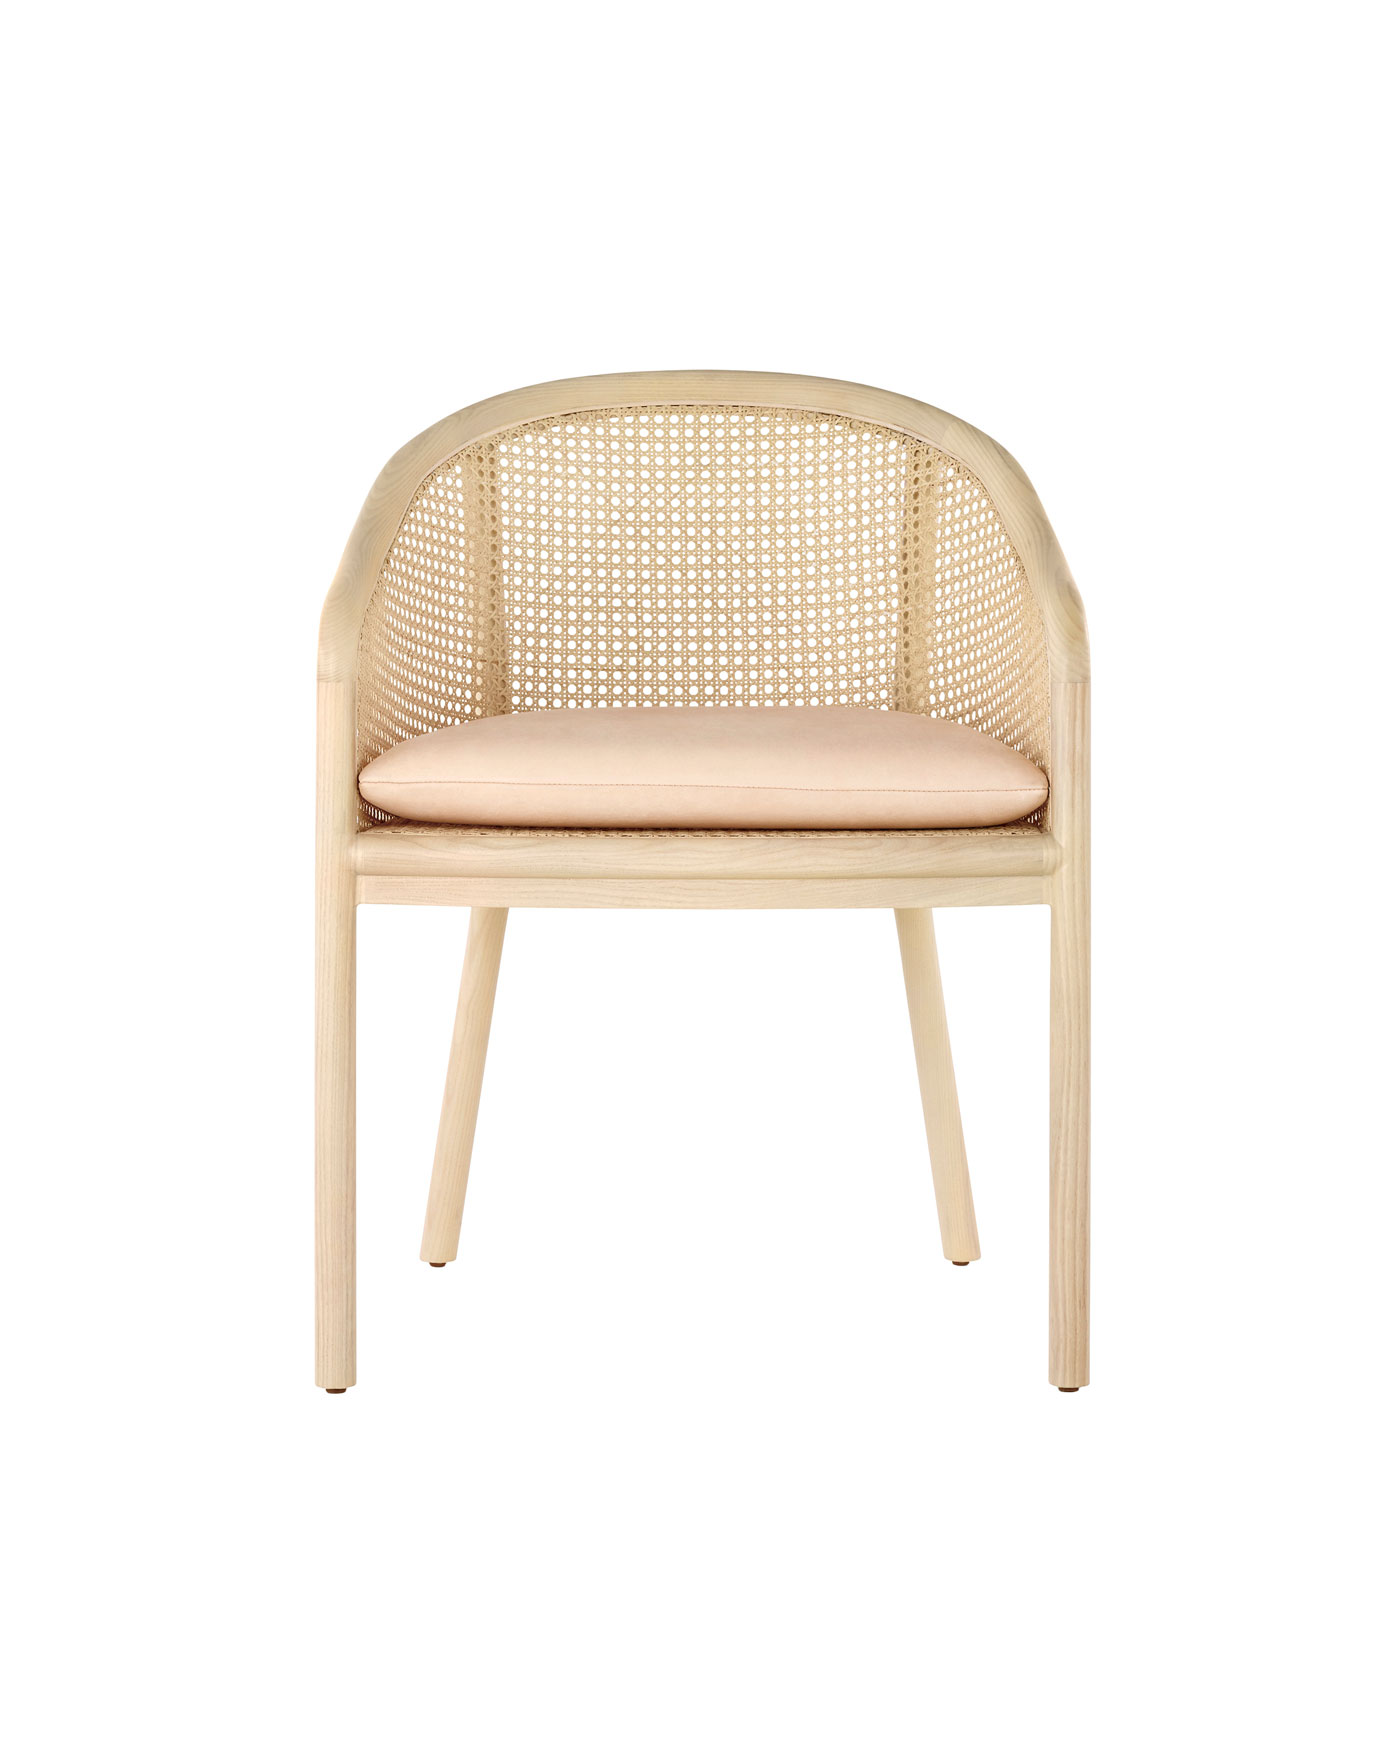 Landmark Chair 1964 by Ward Bennett featured in Chair 500 Designs That Matter